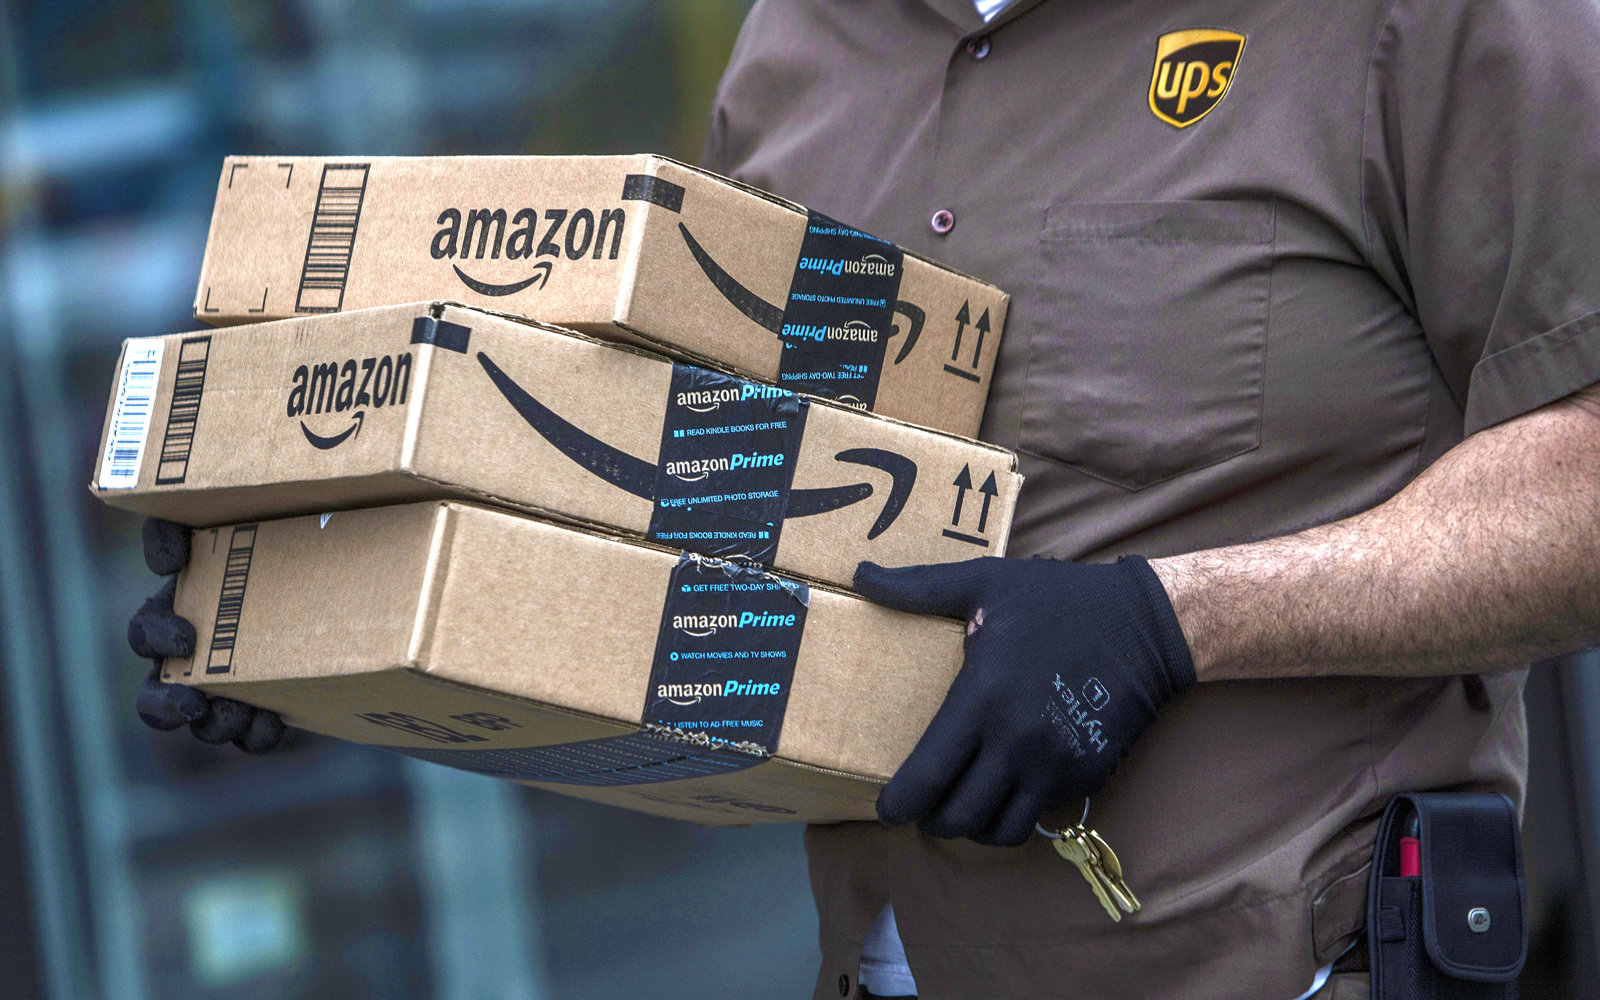 Amazon Extends Free Shipping Deadline To Dec 16